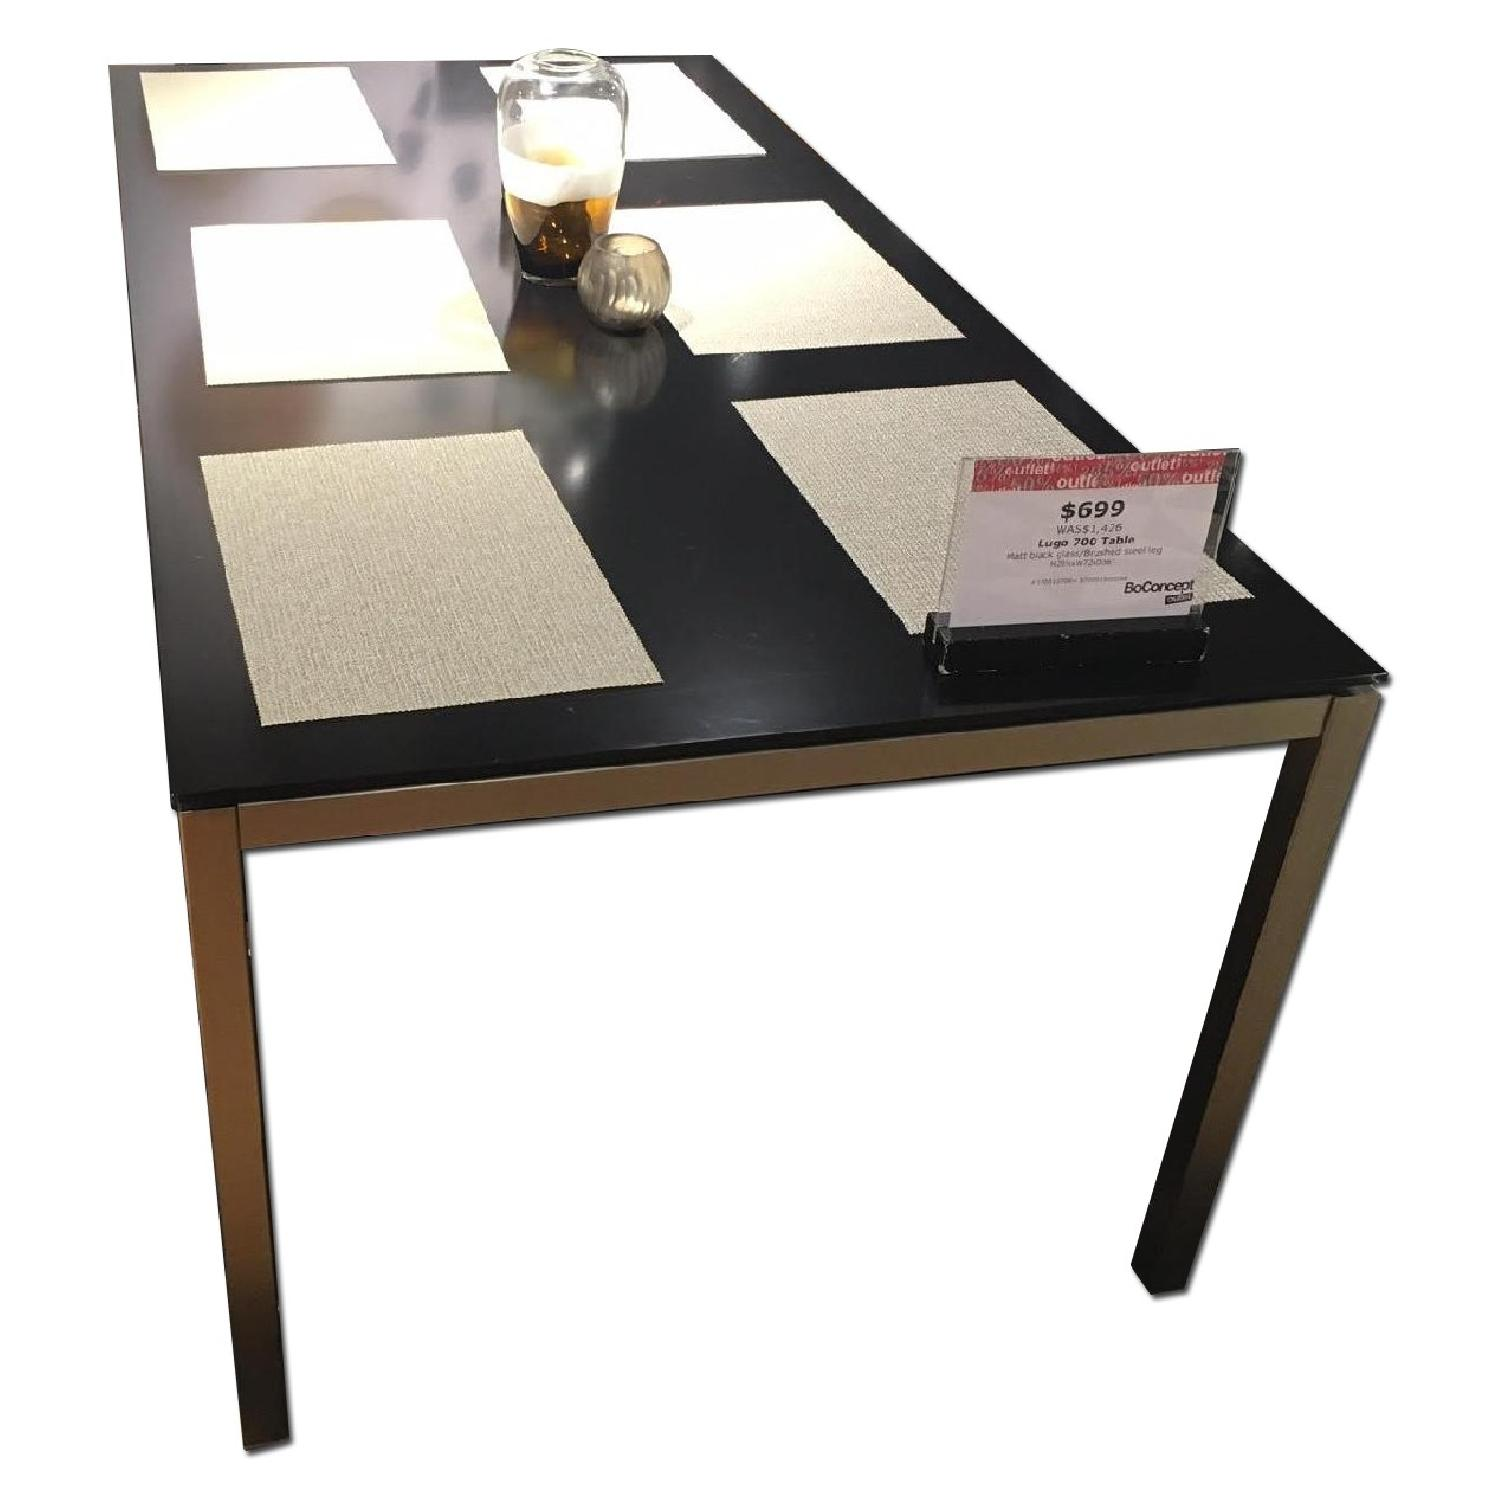 Boconcept occa dining table images design and decorating ideas for a traditi - Boconcept table basse ...